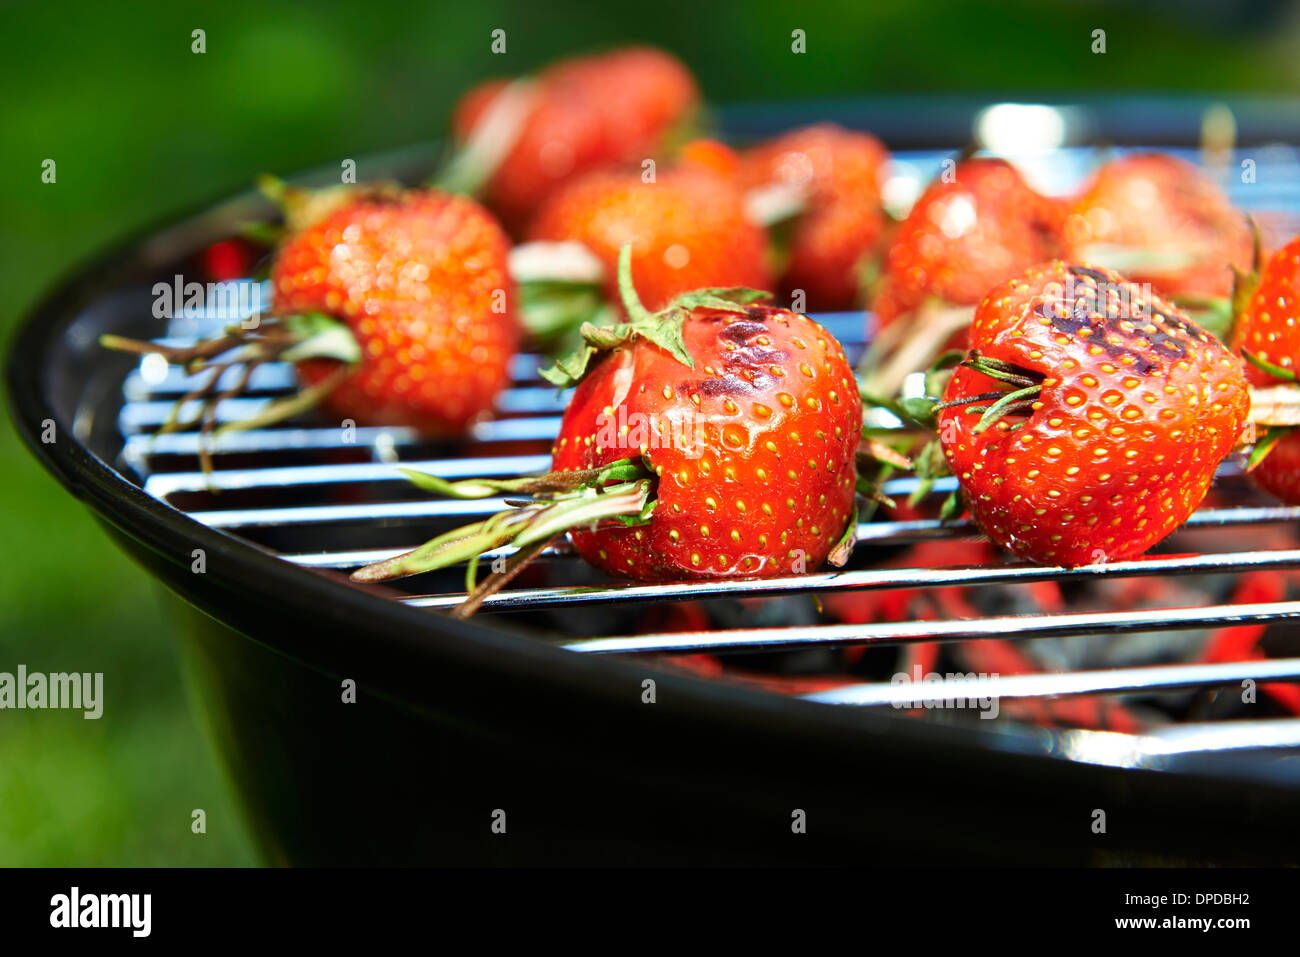 Grilled strawberries spicked with rosmary - Stock Image